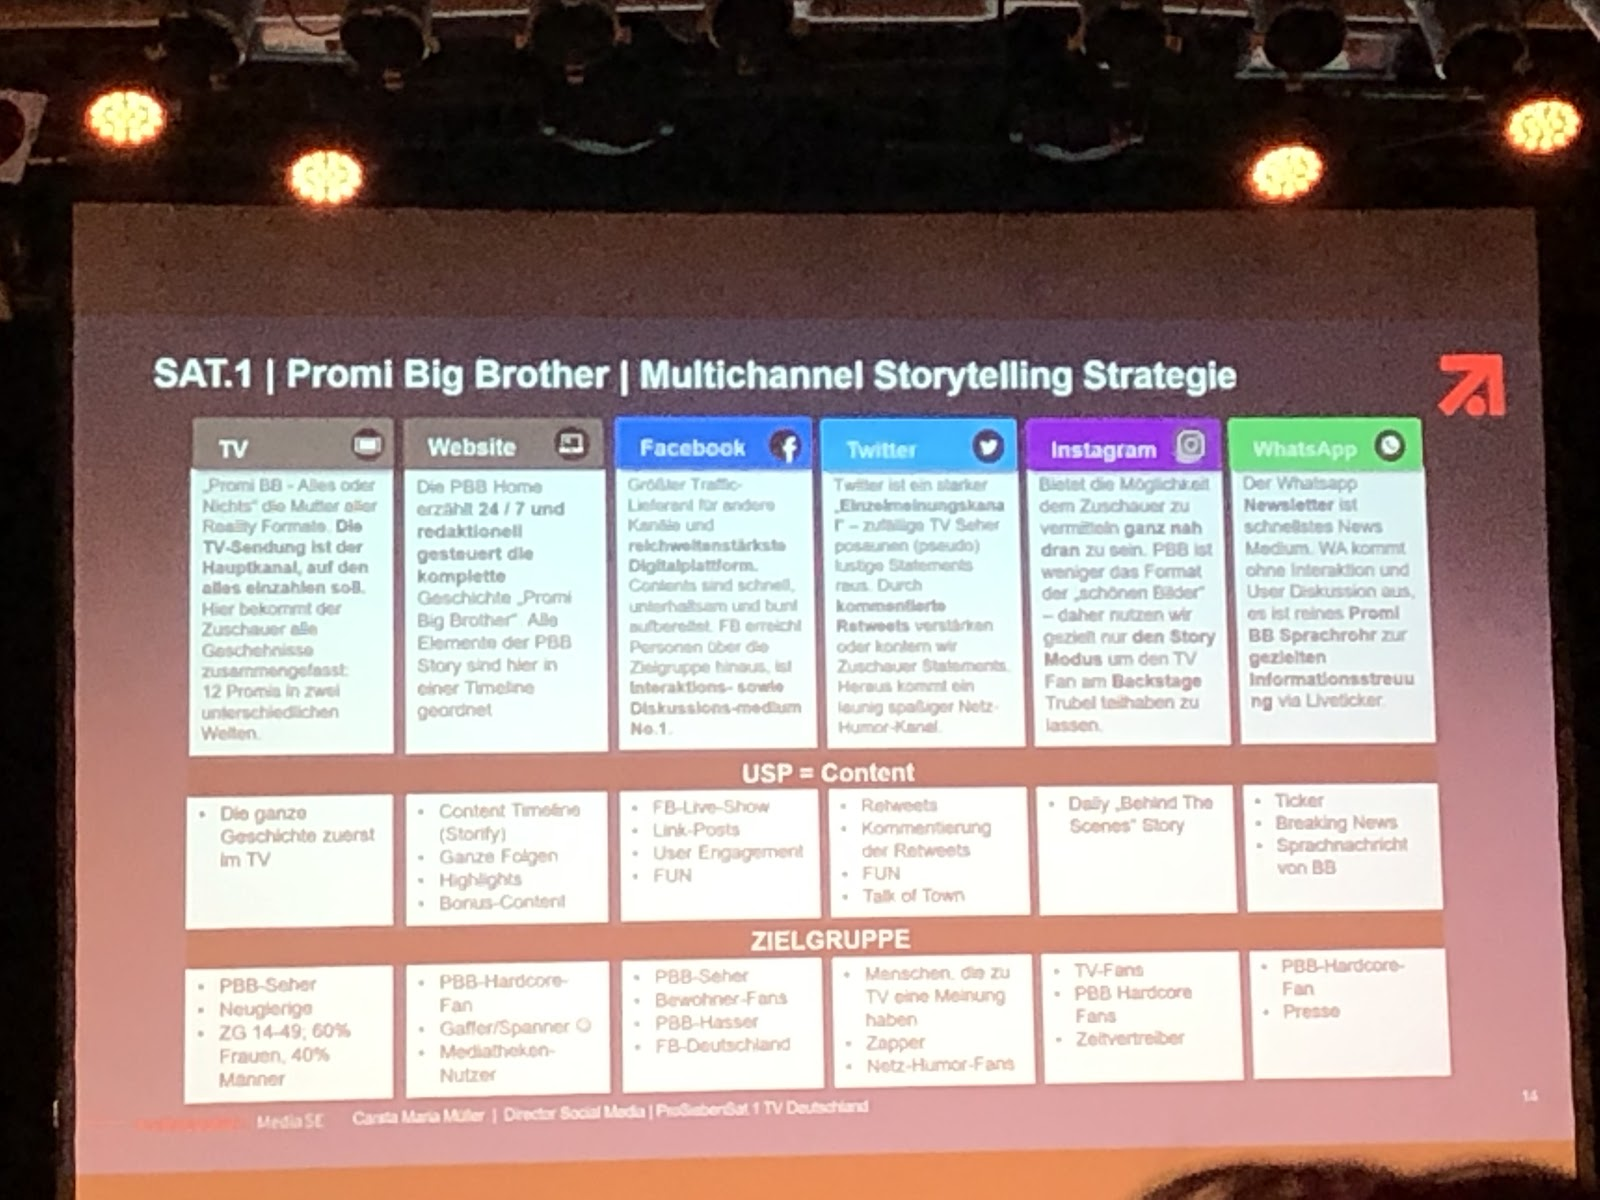 Promi Big Brother Multichannel Storytelling Strategie 2